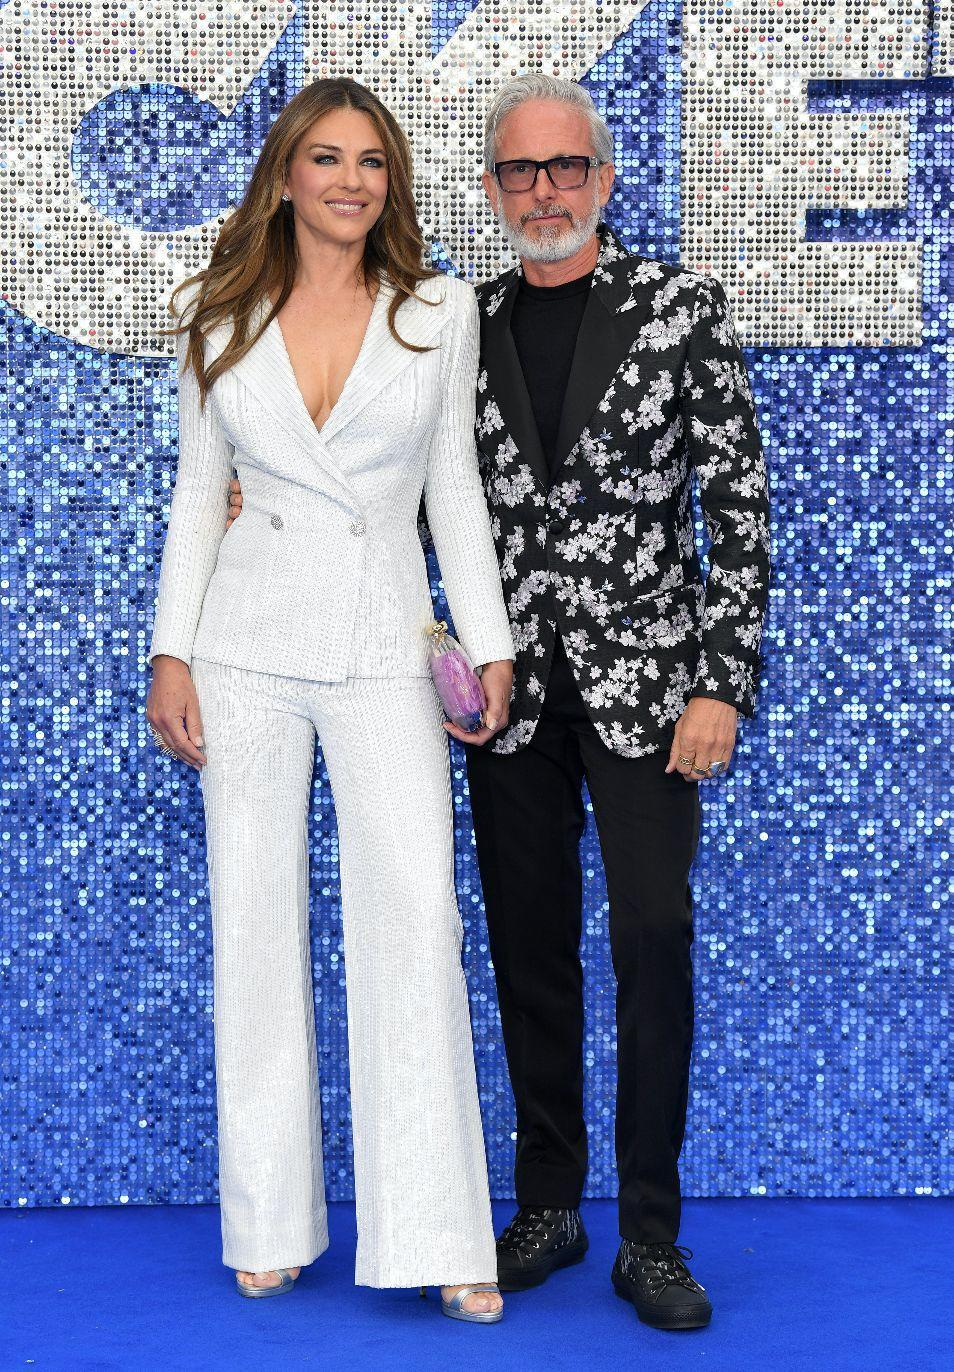 Elizabeth Hurley and Patrick Cox at the 'Rocketman' premiere. [Photo: Getty]